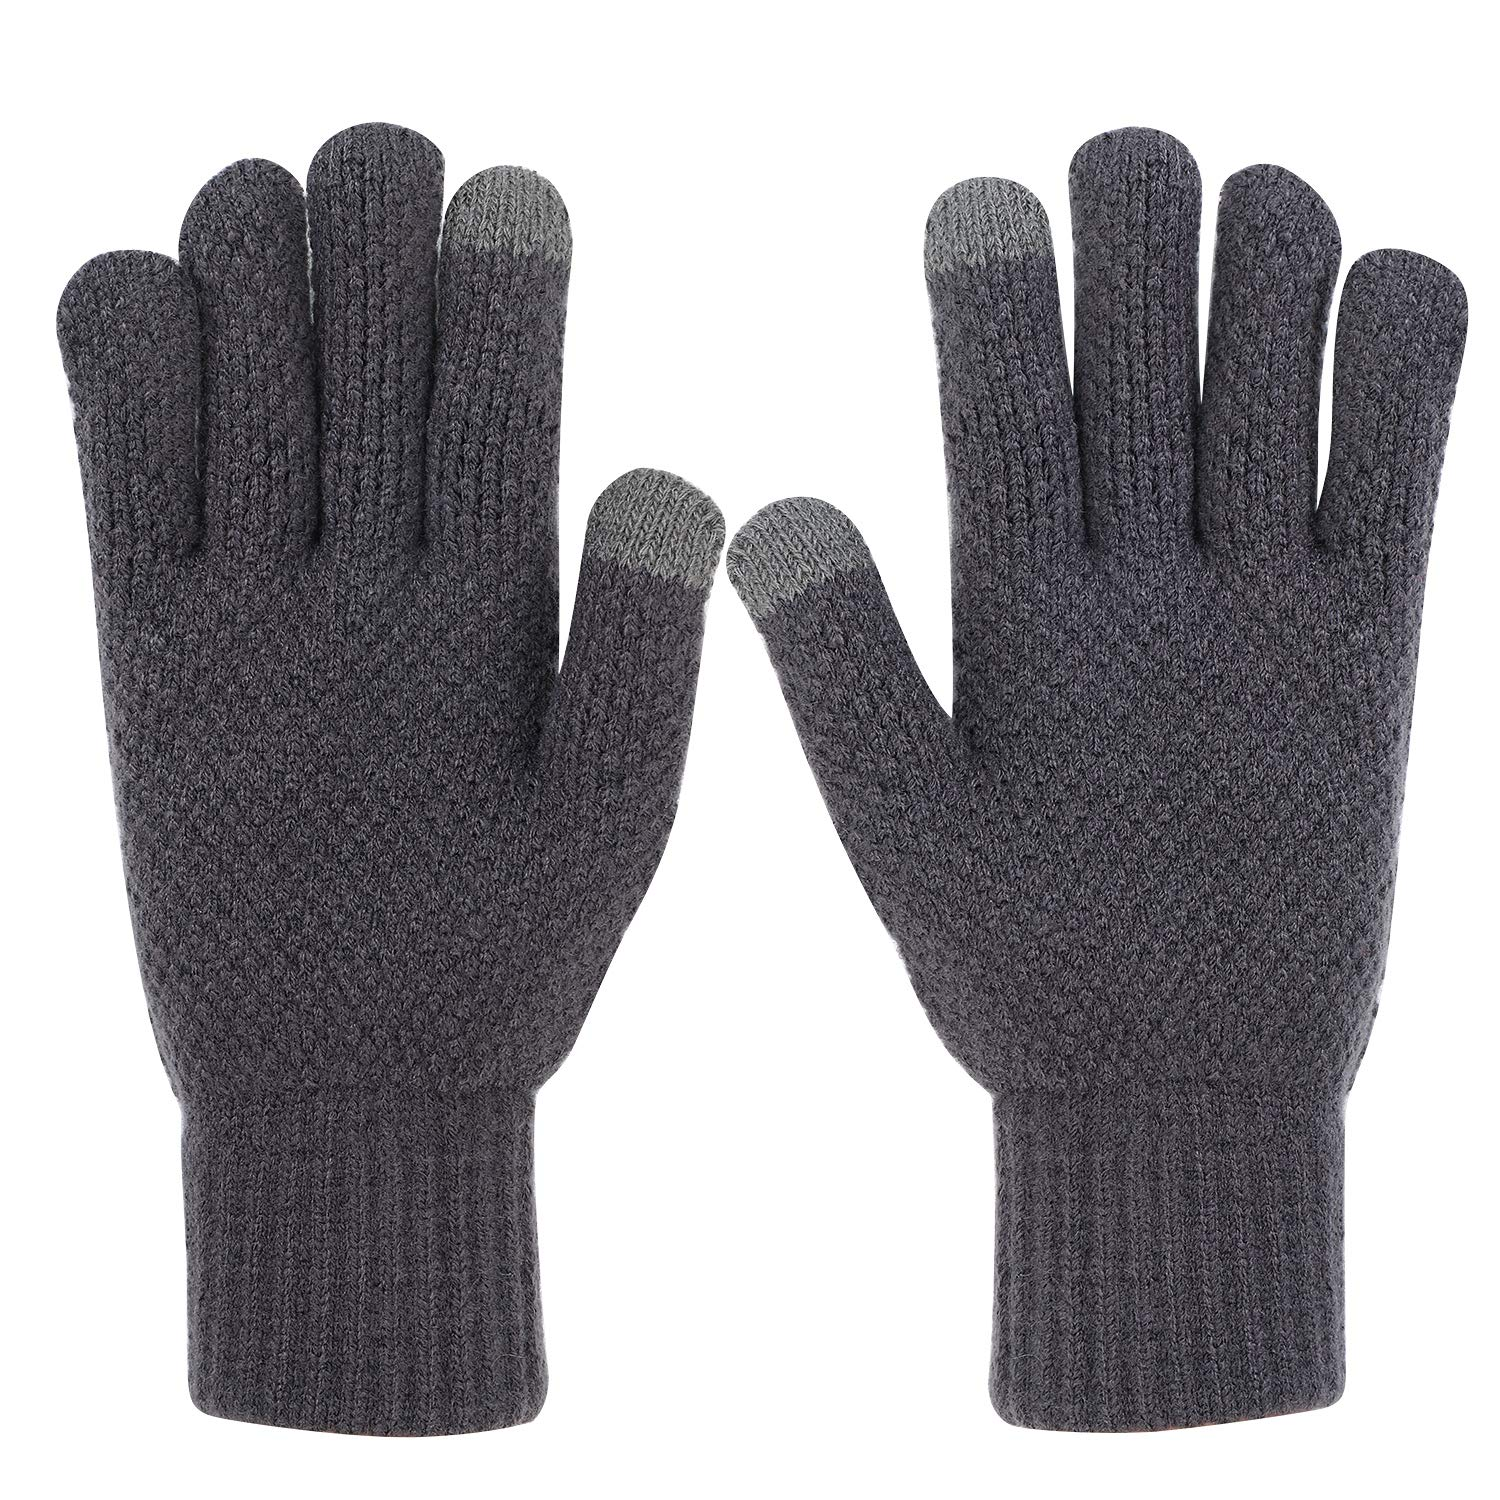 Mens Warm Touchscreen Gloves Thick Winter Knit Gloves with Wool Lining Texting LONTG